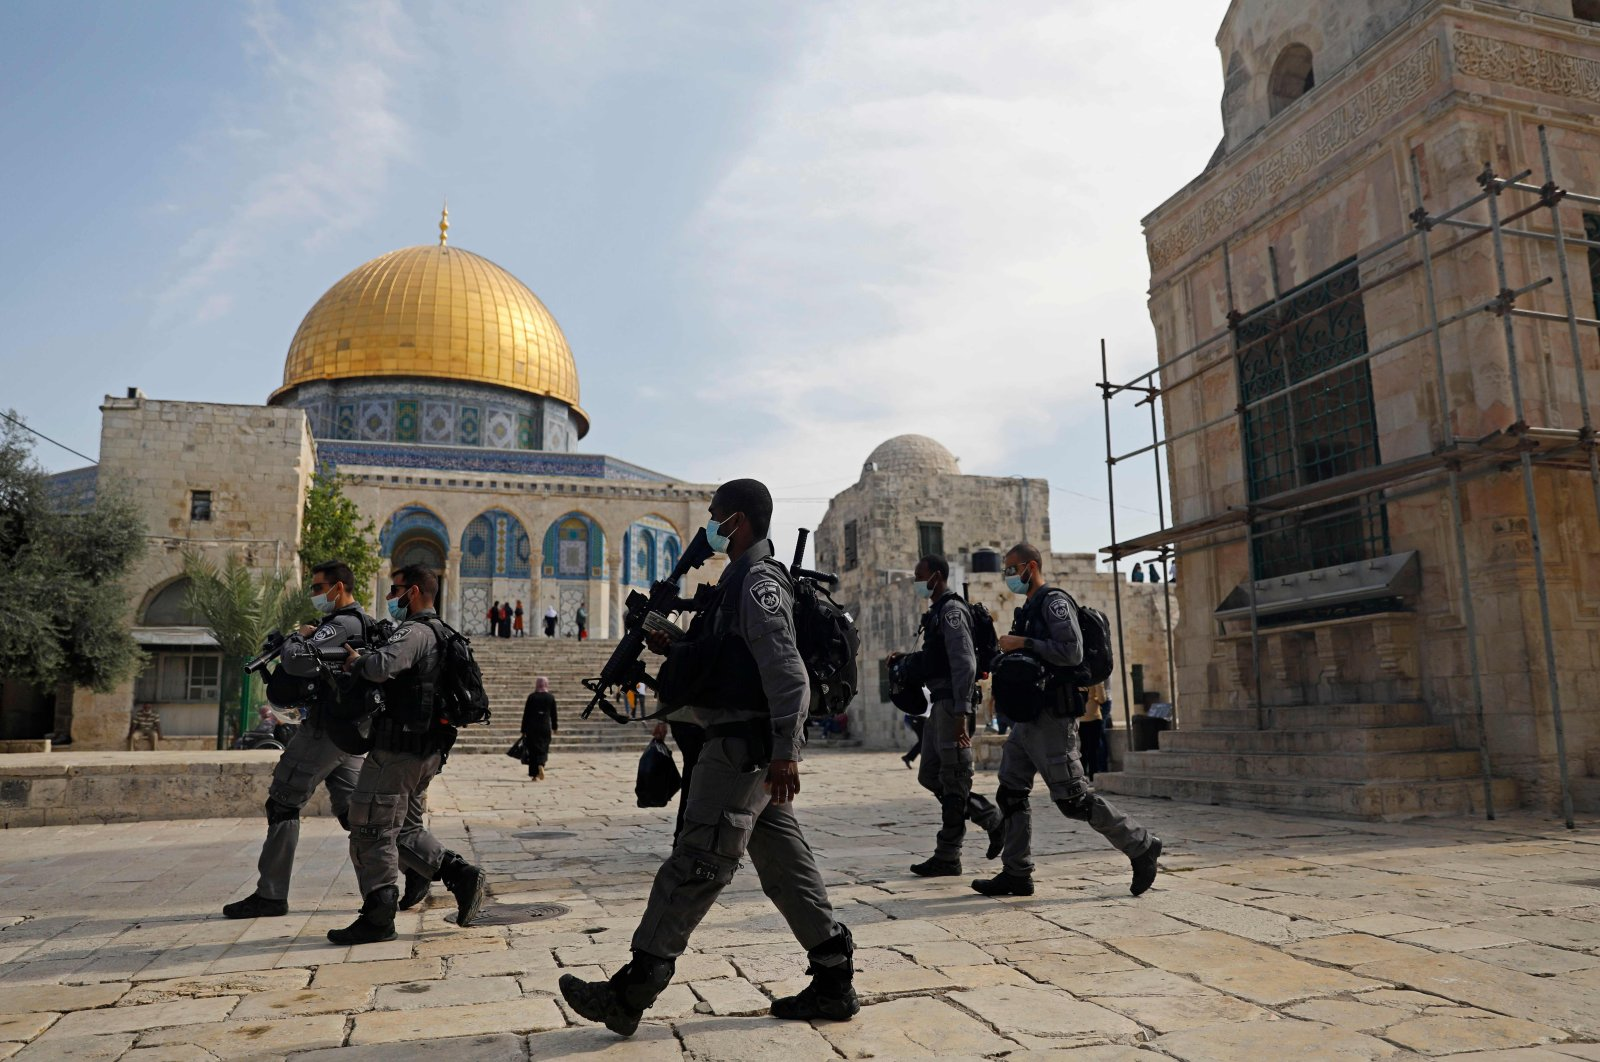 Israeli forces patrol the Al-Aqsa mosque compound, Islam's third holiest site, in the Old City of Jerusalem, as Palestinians stage protest (unseen) against comments by French President Emmanuel Macron defending cartoons of the Prophet Muhammed, Oct. 30, 2020. (AFP Photo)